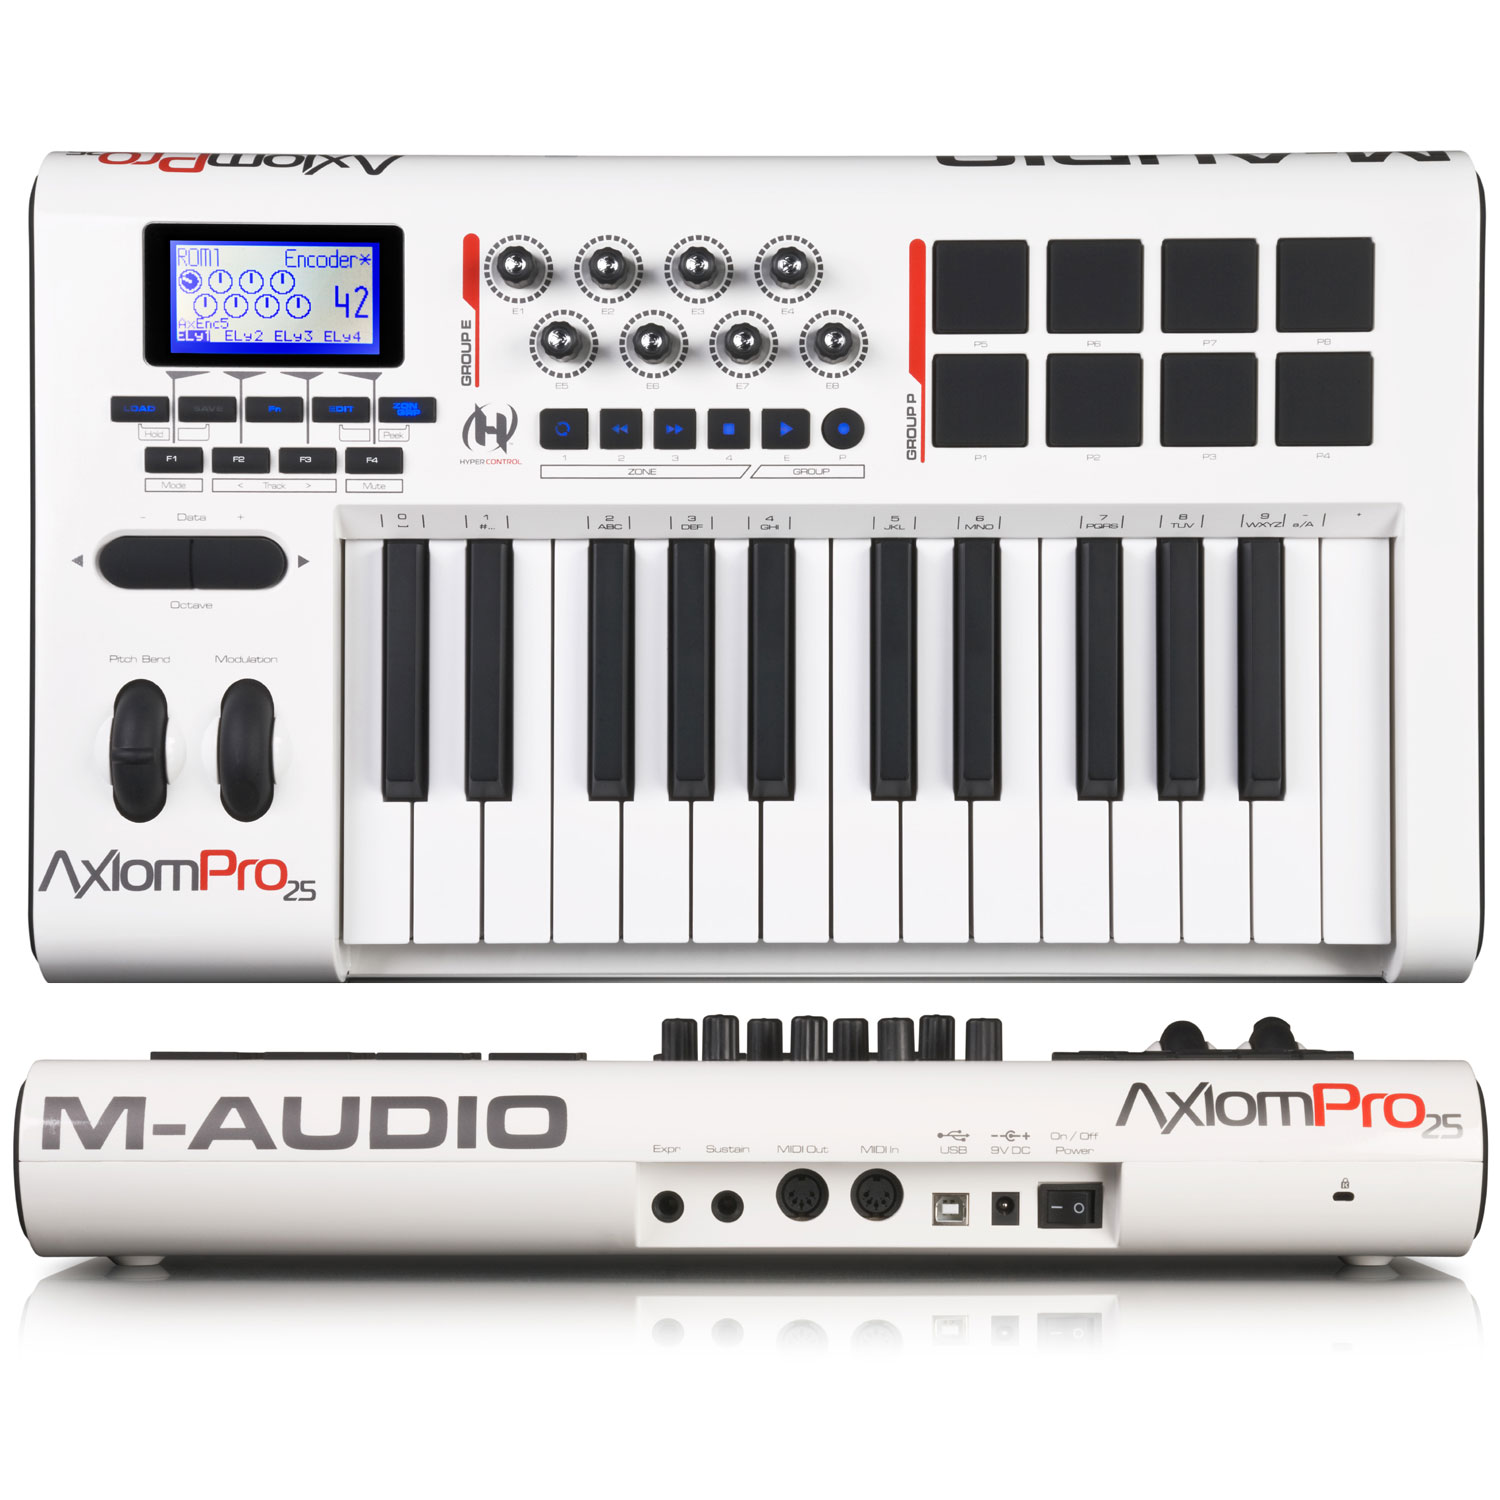 m audio axiom pro 25 image 419559 audiofanzine